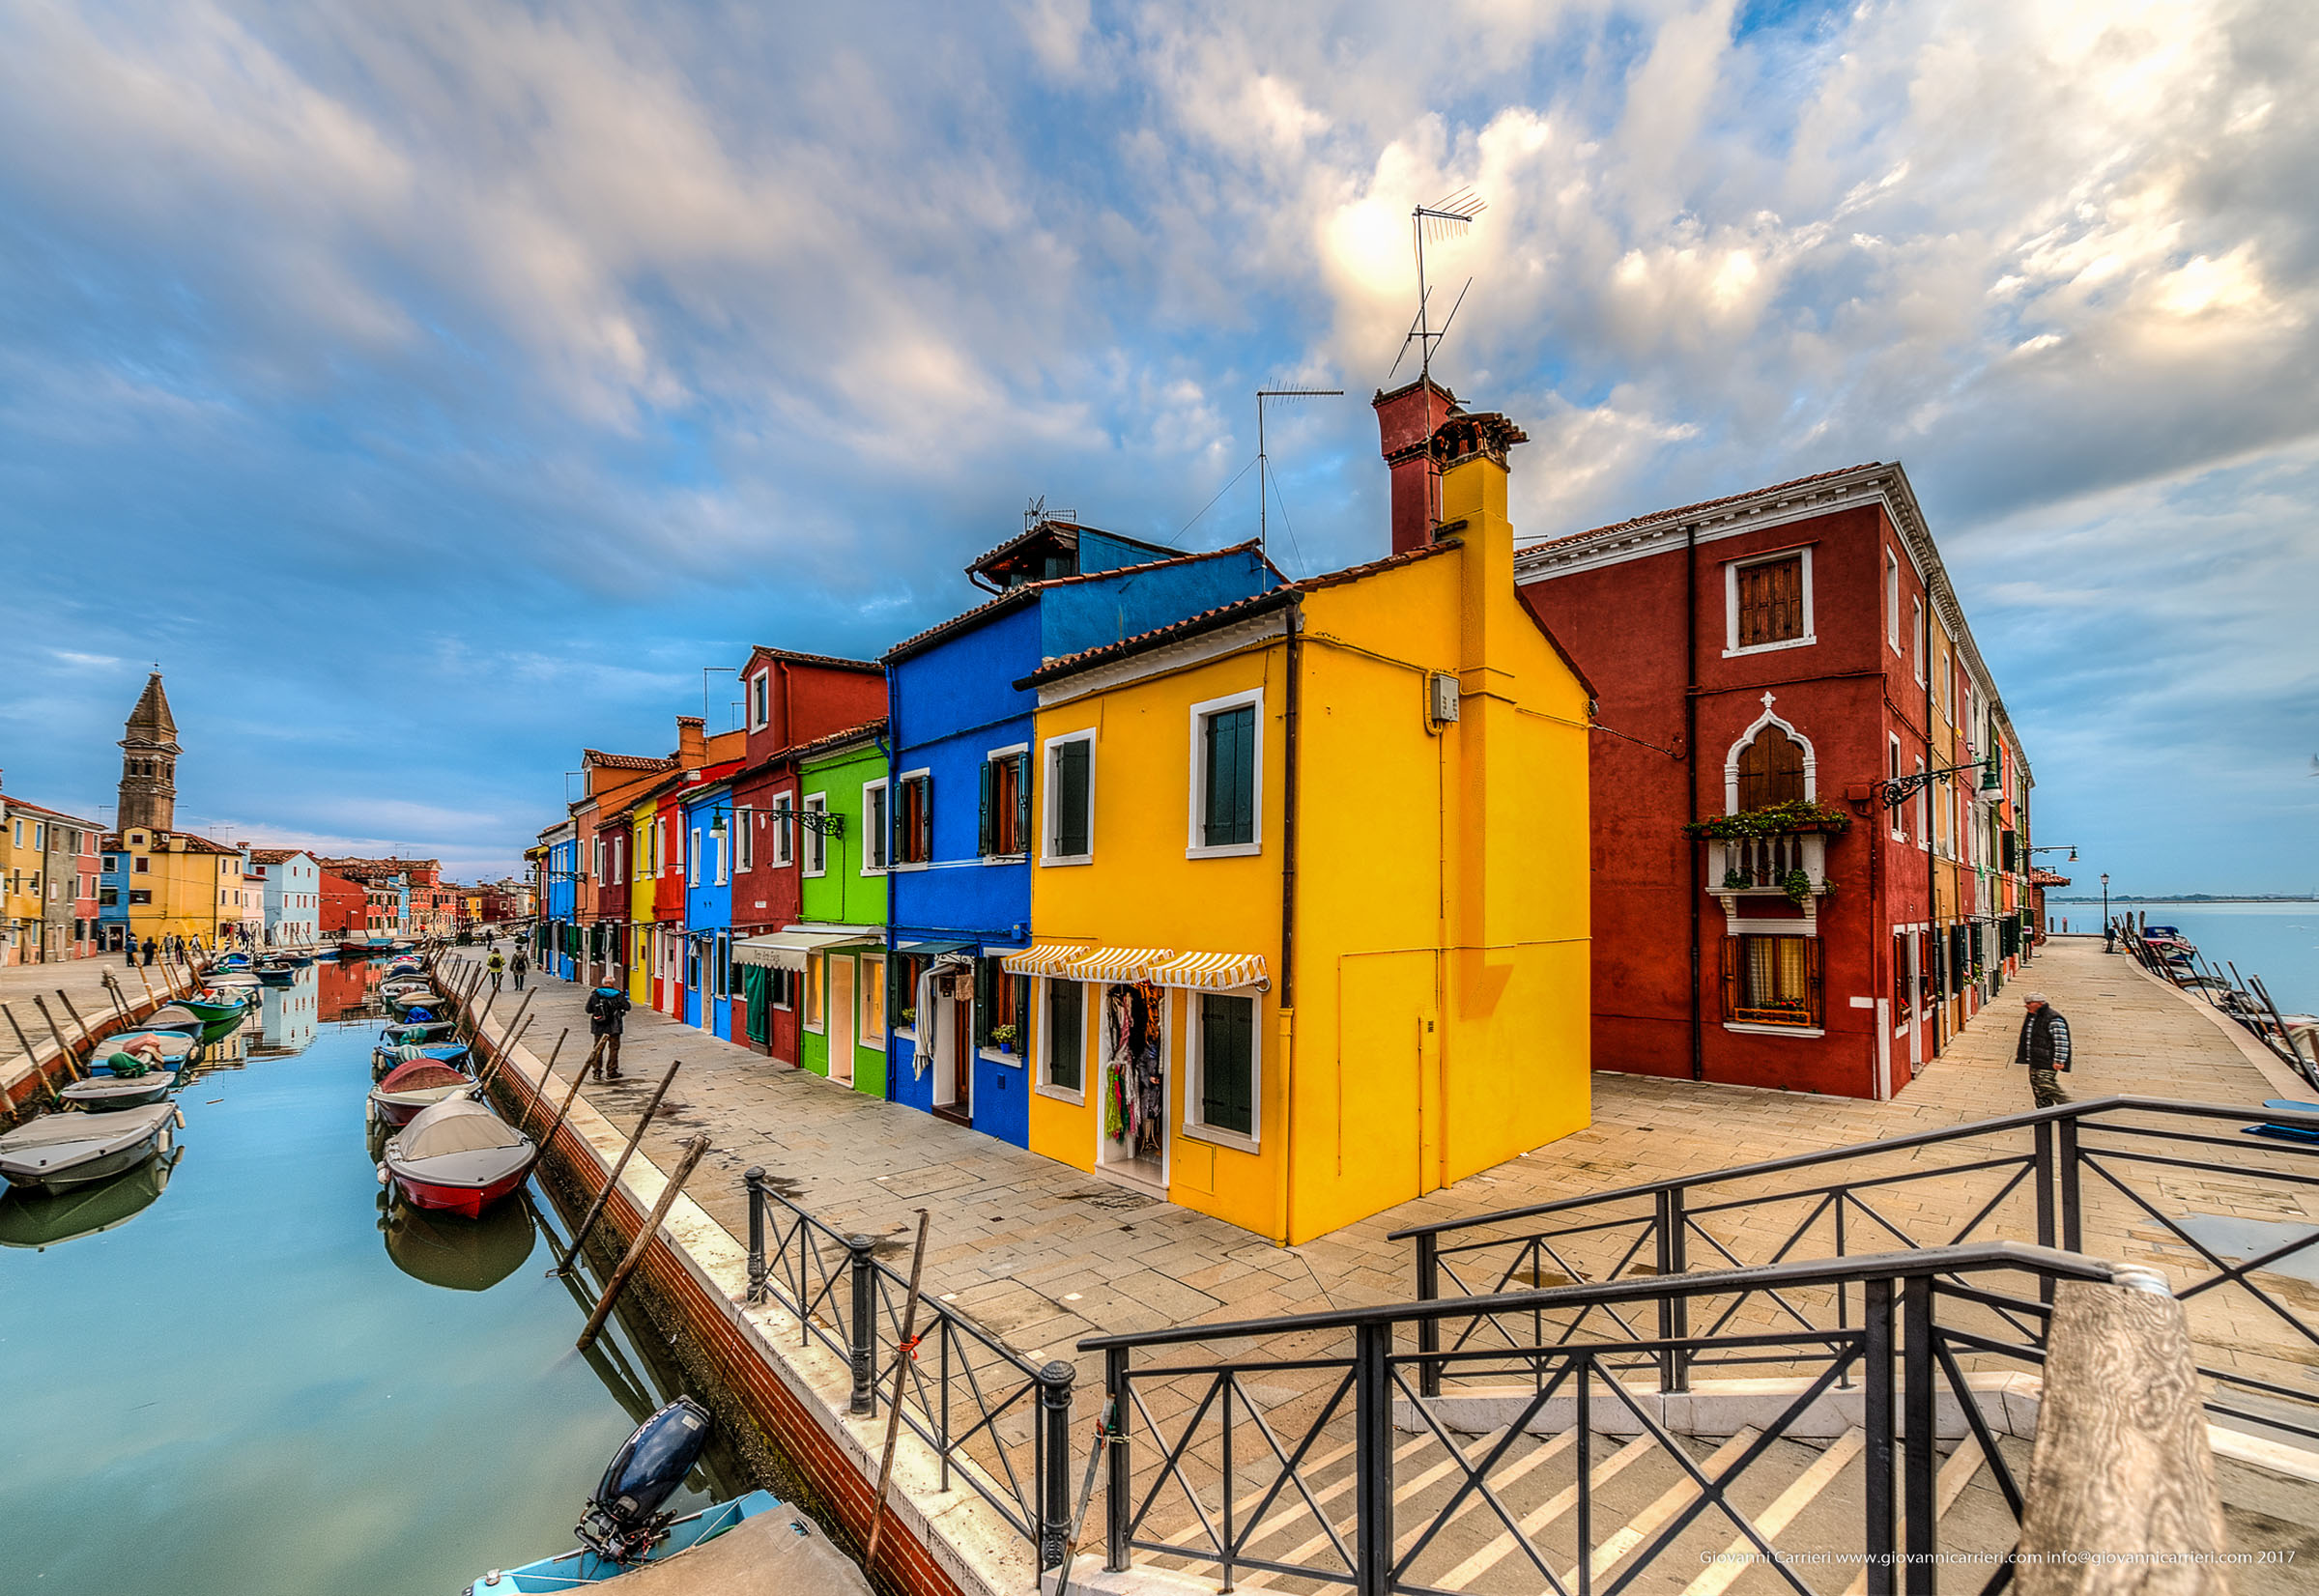 Photographs of Burano